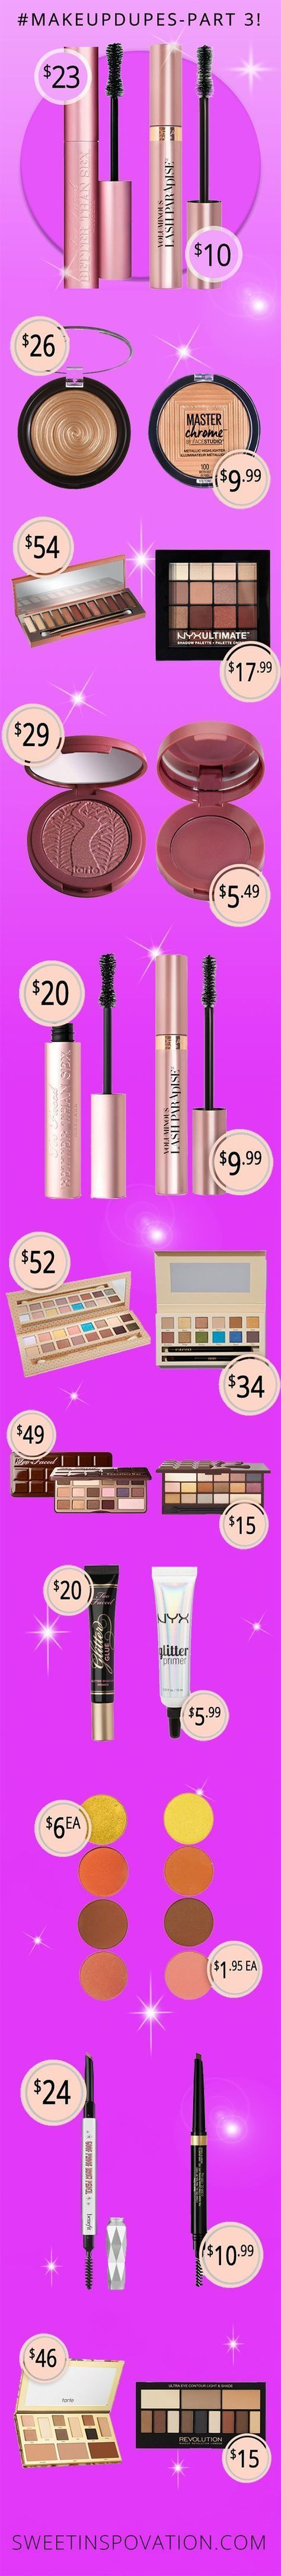 """Welcome to Part 3 of our Makeup Dupes series! These 10 high-end makeup products can be """"duped"""" with these Drugstore Makeup Products!"""